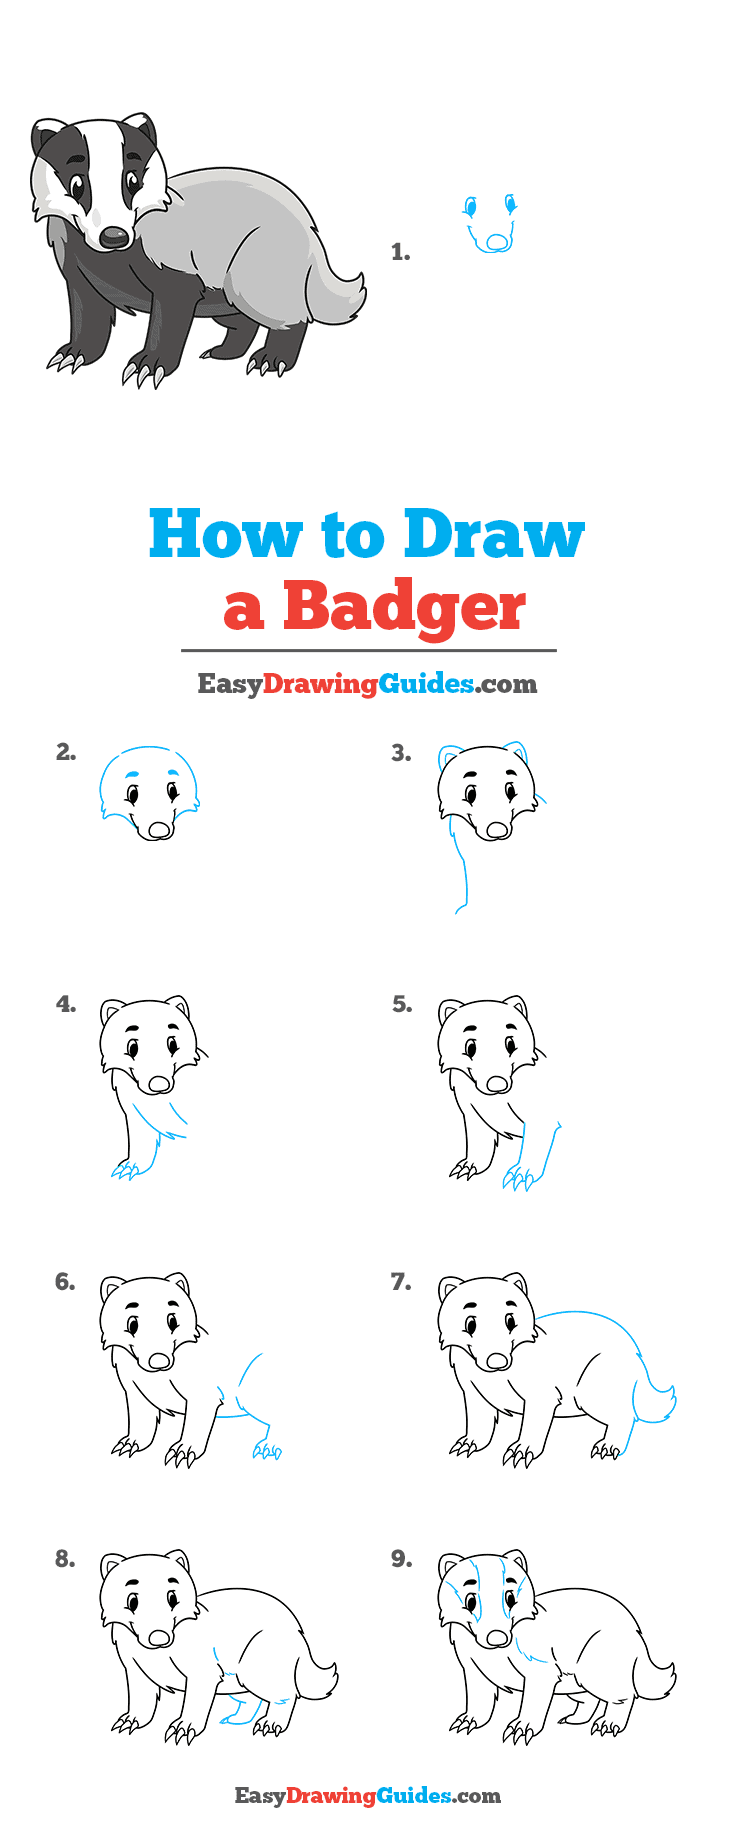 How to Draw a Badger Step by Step Tutorial Image